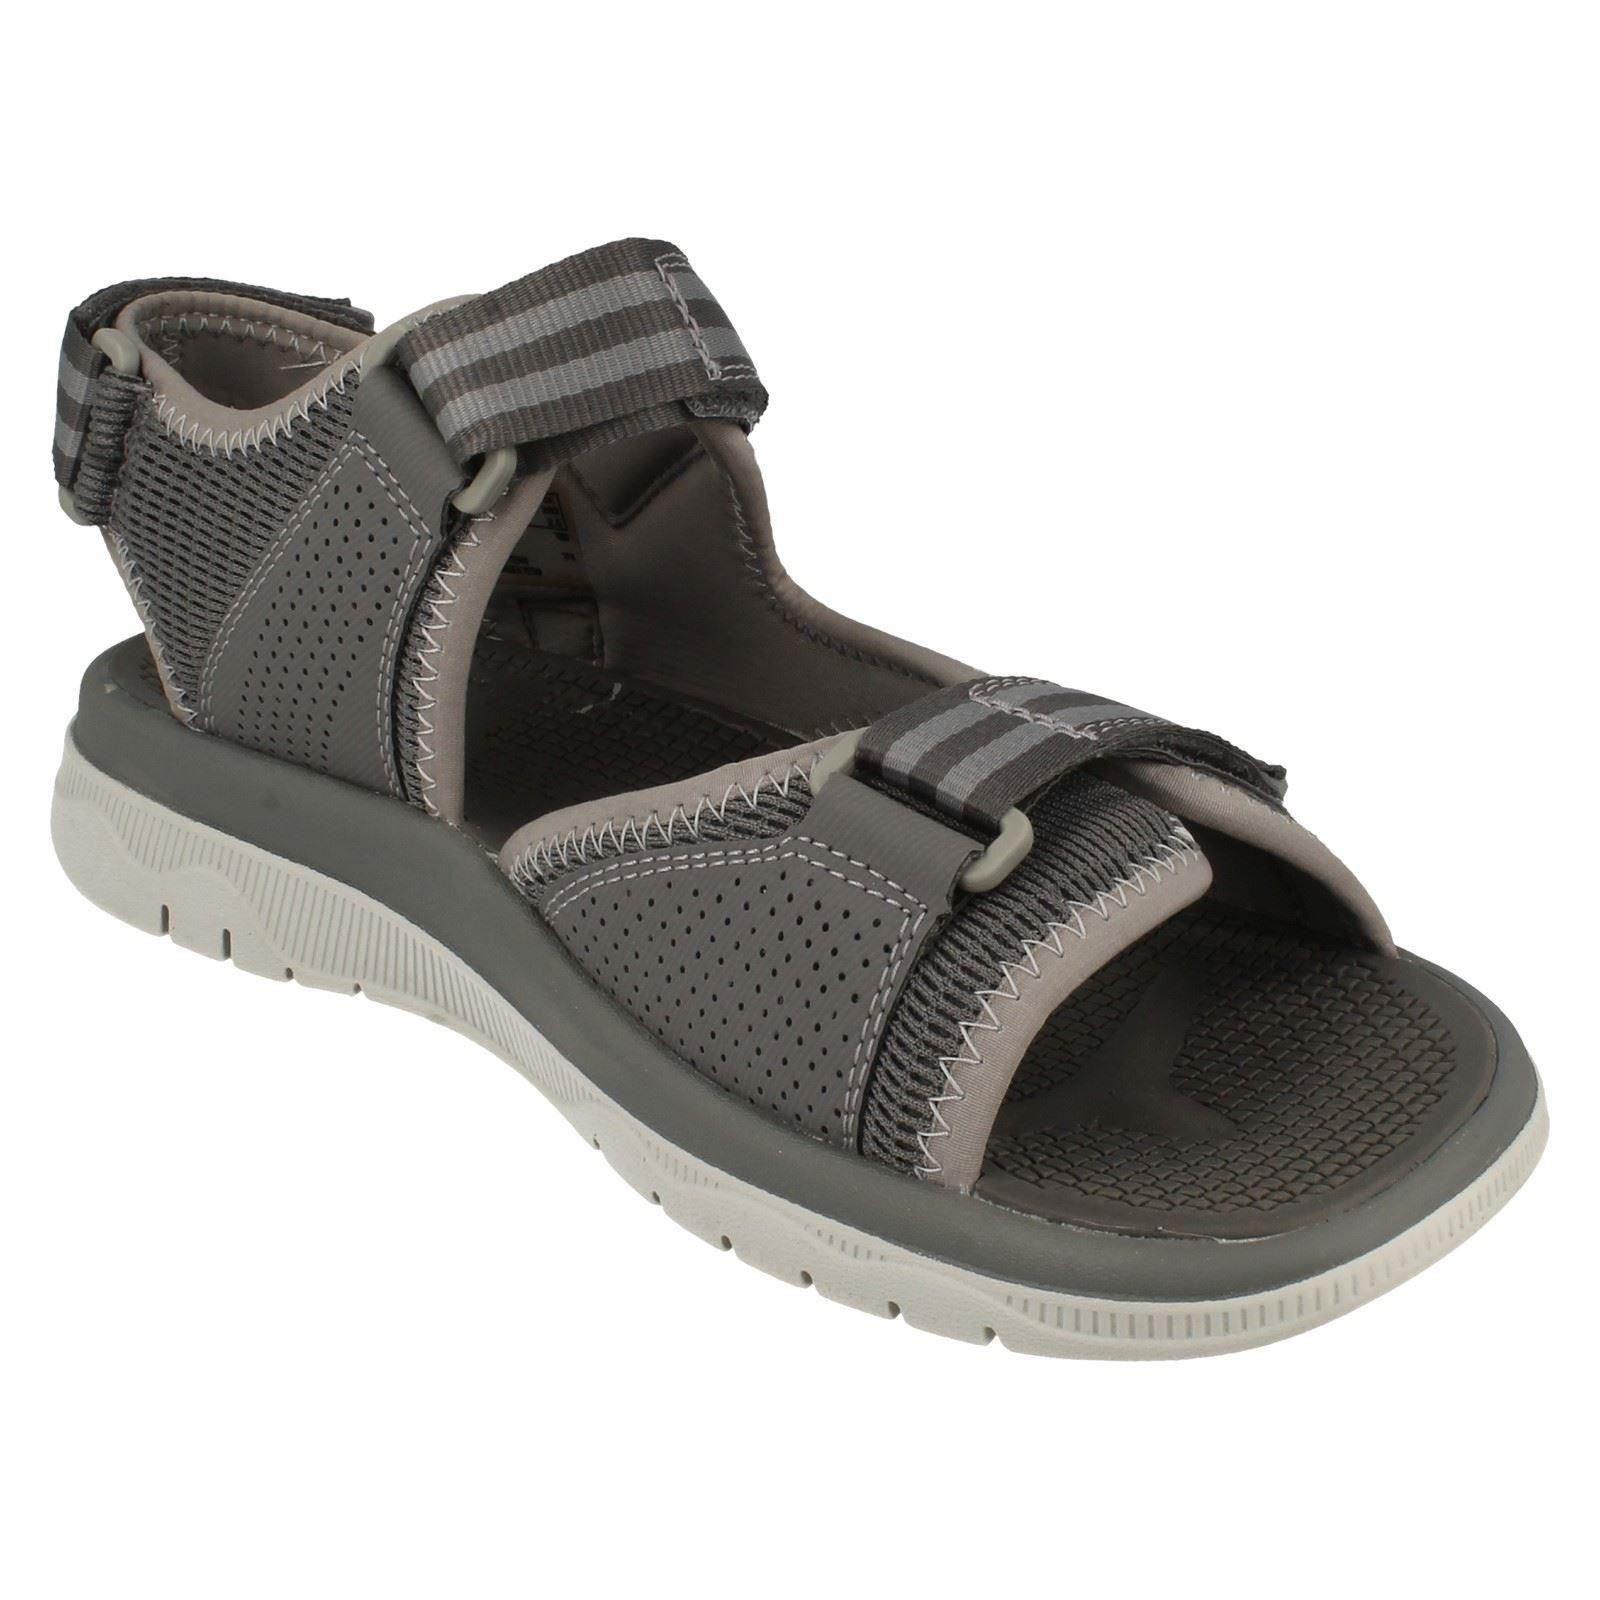 Cloudsteppers Clarks by Clarks Cloudsteppers Mens Sandals Balta Sky 565a4c